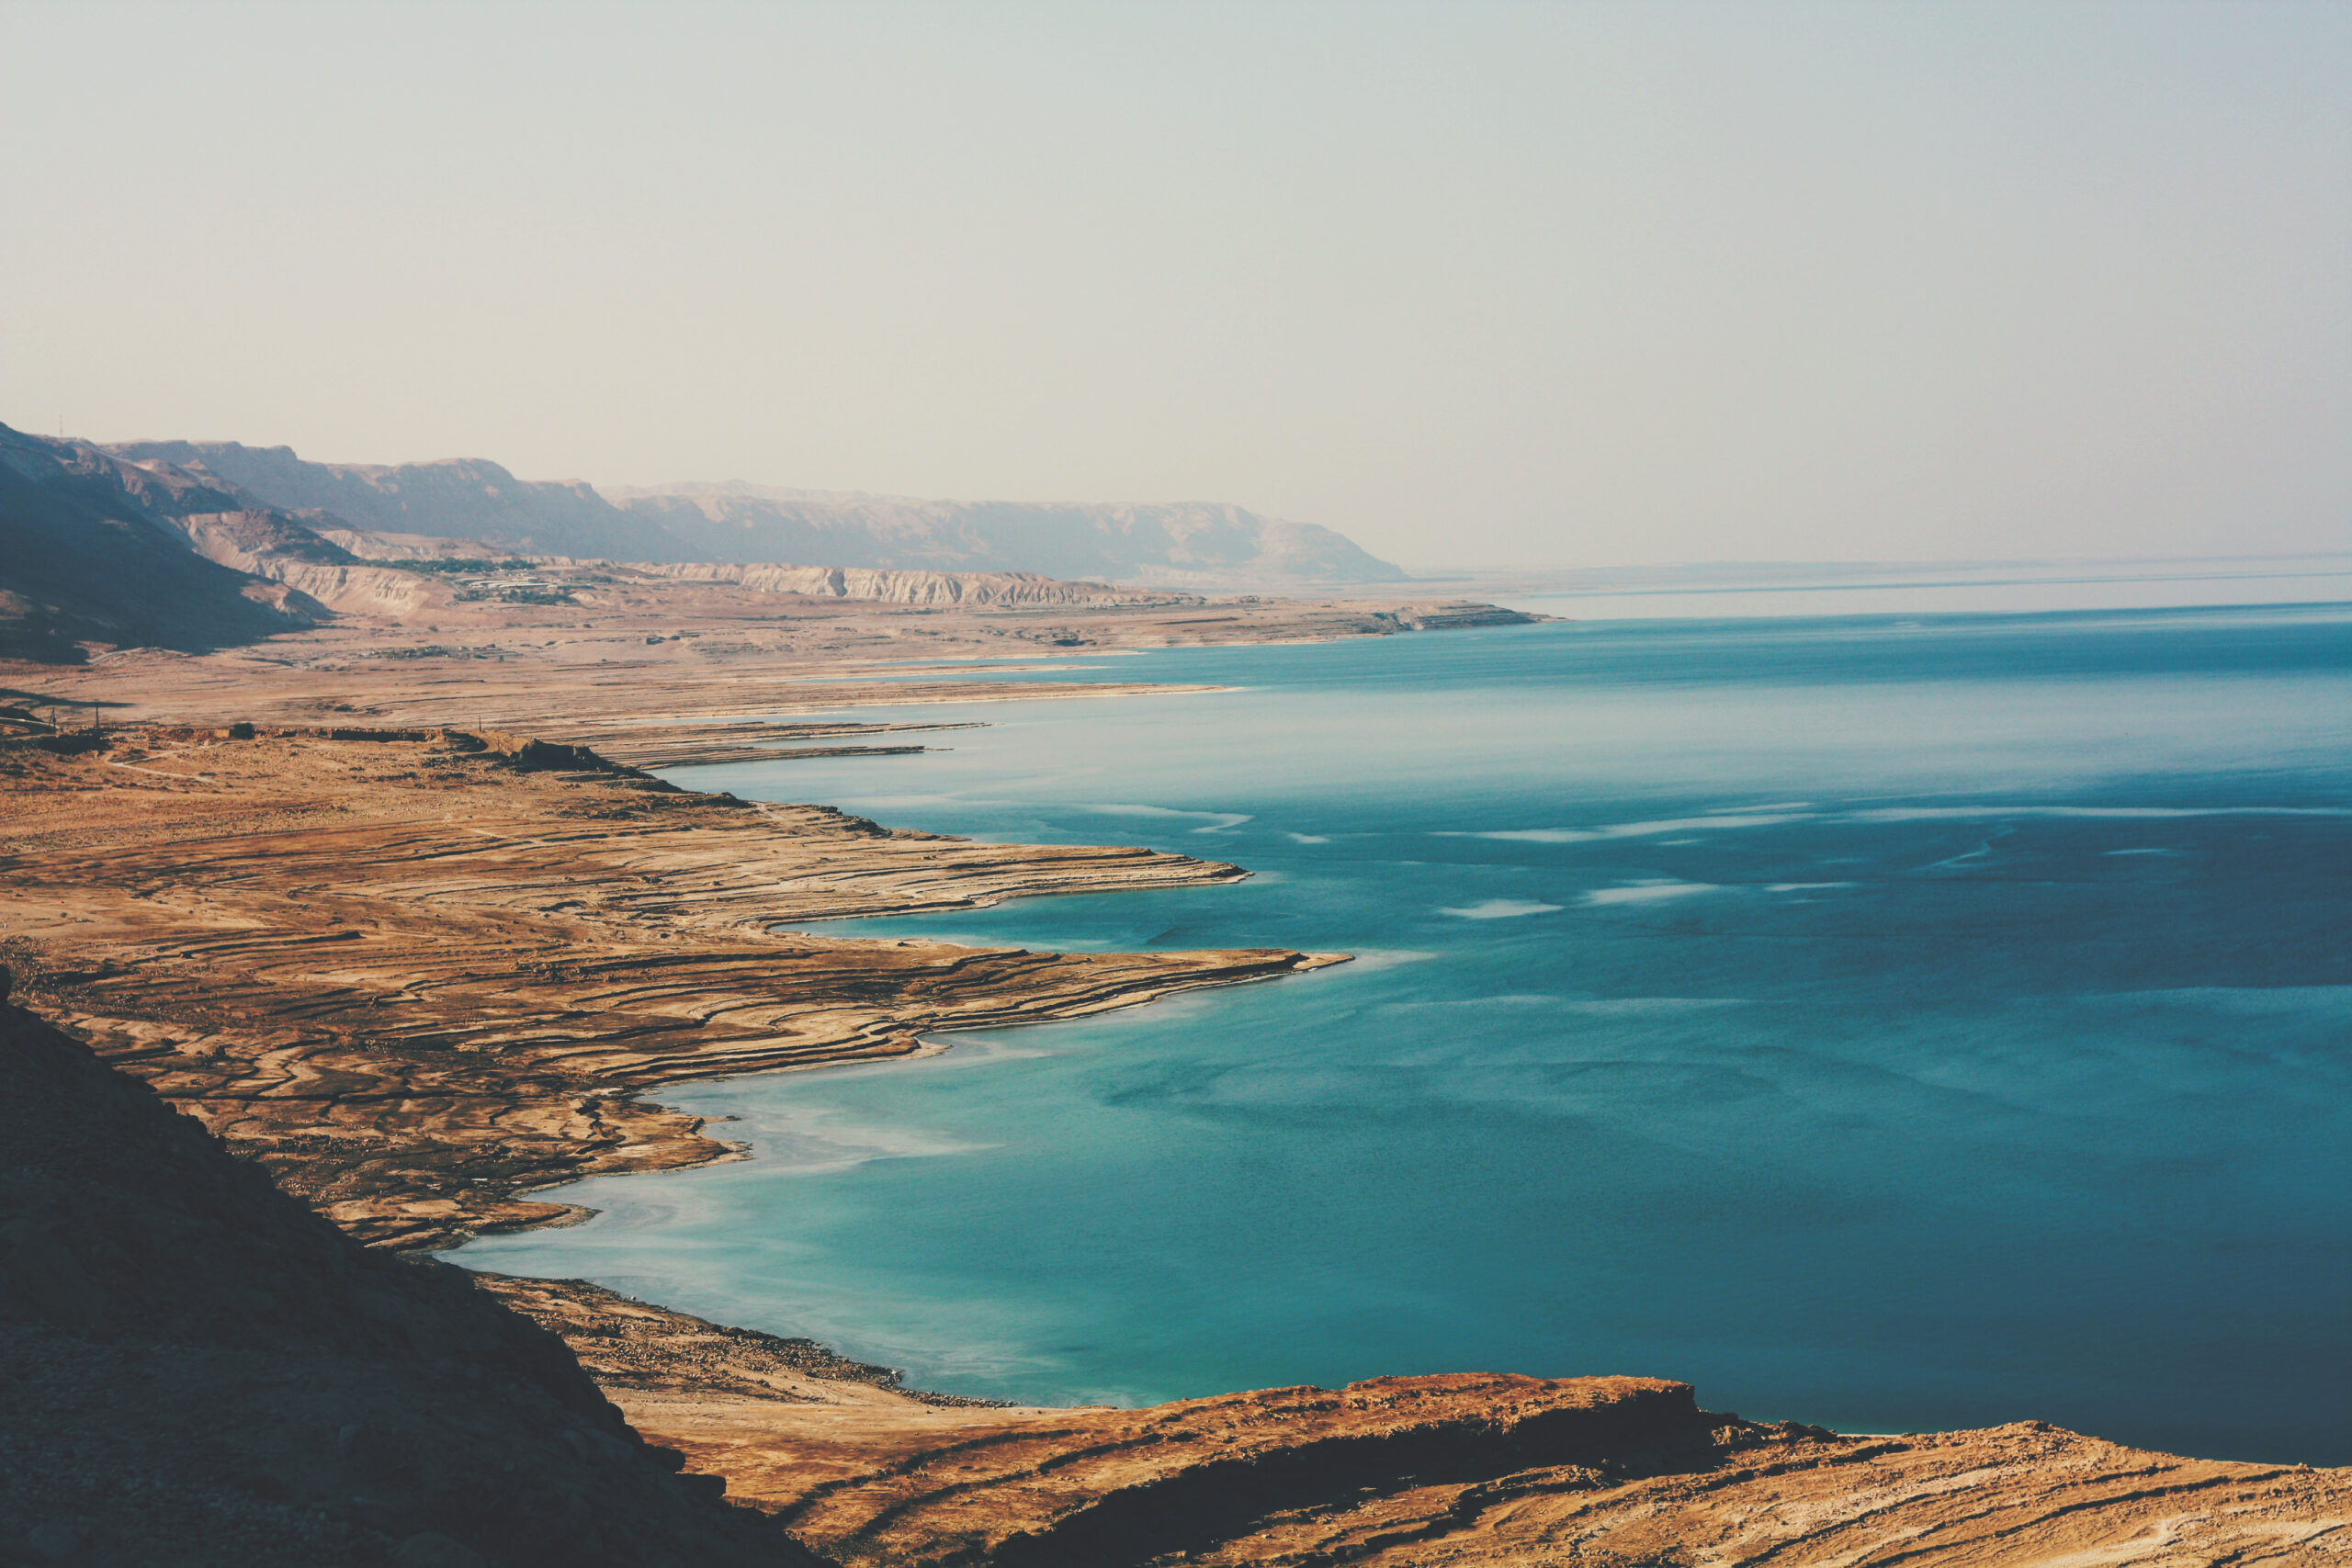 Dead Sea and desert cliffs southern Israel